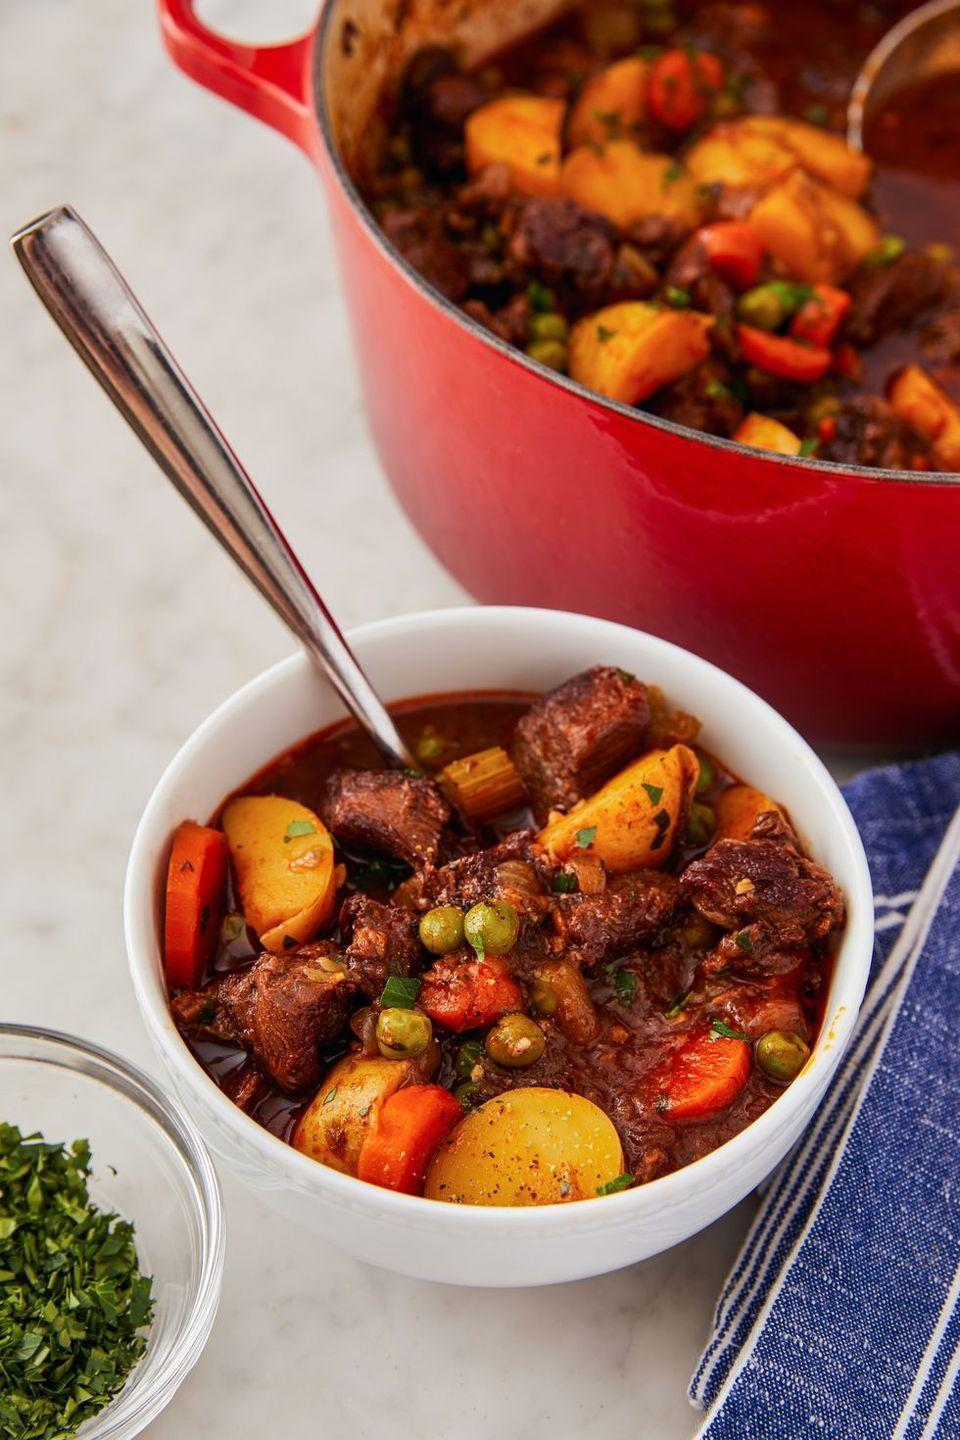 """<p>A good beef stew is a winter essential, and this one only takes 15 minutes to prep before cooking. </p><p><strong><em>Get the recipe at <a href=""""https://www.delish.com/cooking/recipe-ideas/a23515497/easy-beef-stew-recipe/"""" rel=""""nofollow noopener"""" target=""""_blank"""" data-ylk=""""slk:Delish"""" class=""""link rapid-noclick-resp"""">Delish</a>. </em></strong></p><p><strong>______________________________________________________</strong><br><br><br><em>Want more Woman's Day? </em><a href=""""https://subscribe.hearstmags.com/subscribe/womansday/253396?source=wdy_edit_article"""" rel=""""nofollow noopener"""" target=""""_blank"""" data-ylk=""""slk:Subscribe to Woman's Day"""" class=""""link rapid-noclick-resp""""><em>Subscribe to Woman's Day</em></a><em> today and get </em><strong><em>73% off your first 12 issues</em></strong><em>. And while you're at it, </em><a href=""""https://link.womansday.com/join/3o9/wdy-newsletter"""" rel=""""nofollow noopener"""" target=""""_blank"""" data-ylk=""""slk:sign up for our FREE newsletter"""" class=""""link rapid-noclick-resp""""><em>sign up for our FREE newsletter</em></a><em> for even more of the Woman's Day content you want.</em><br></p>"""